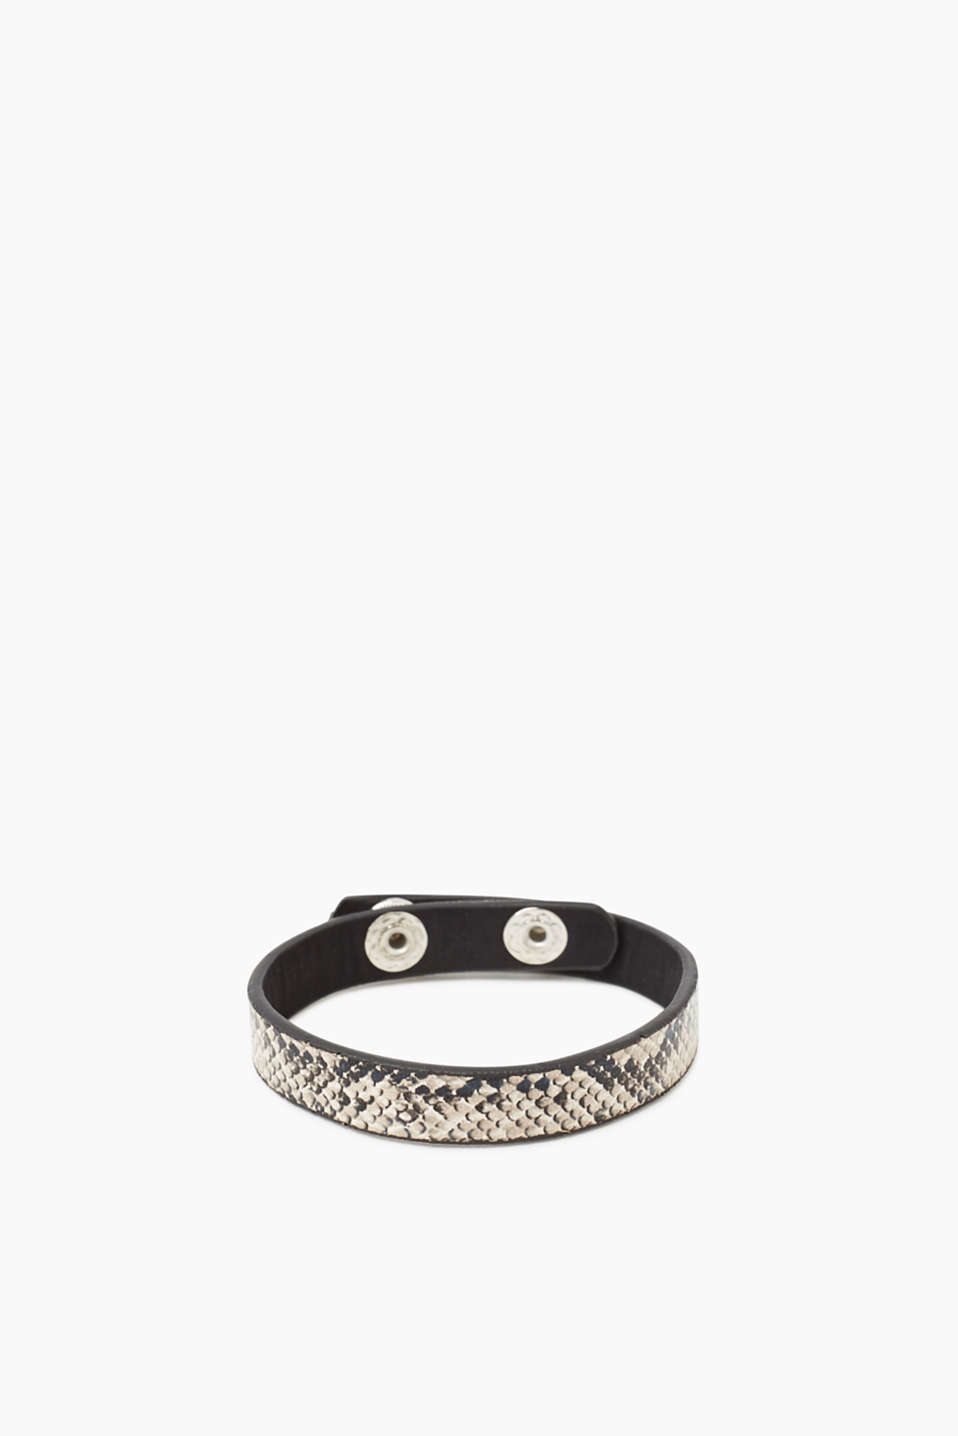 We love things with a reptile finish! This faux leather bracelet impresses with its python finish.